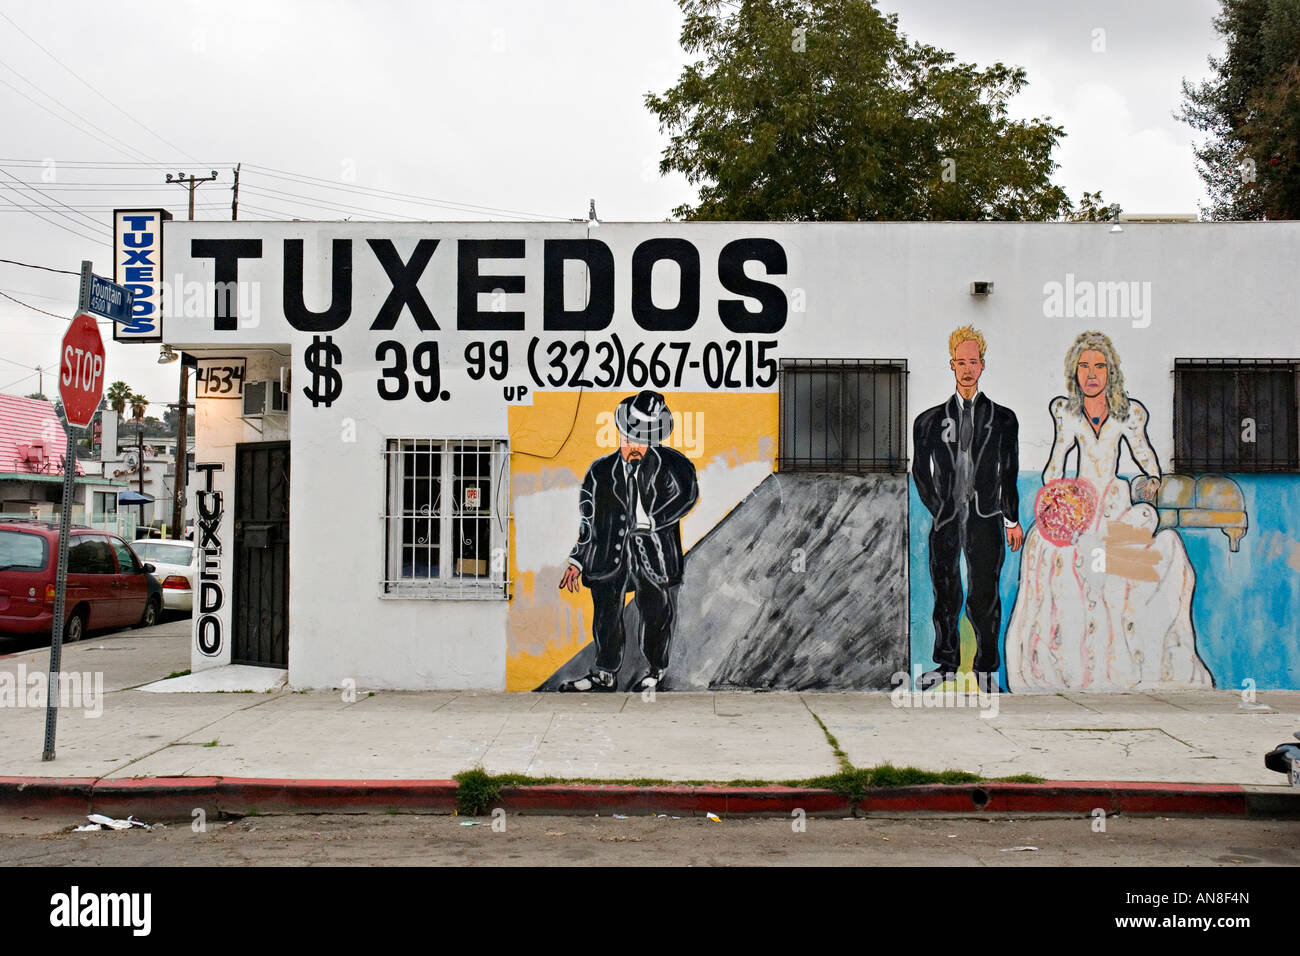 Hollywood, Los Angeles, USA. Mural advertising a back street clothes hire shop for formal wear (weddings etc) - Stock Image